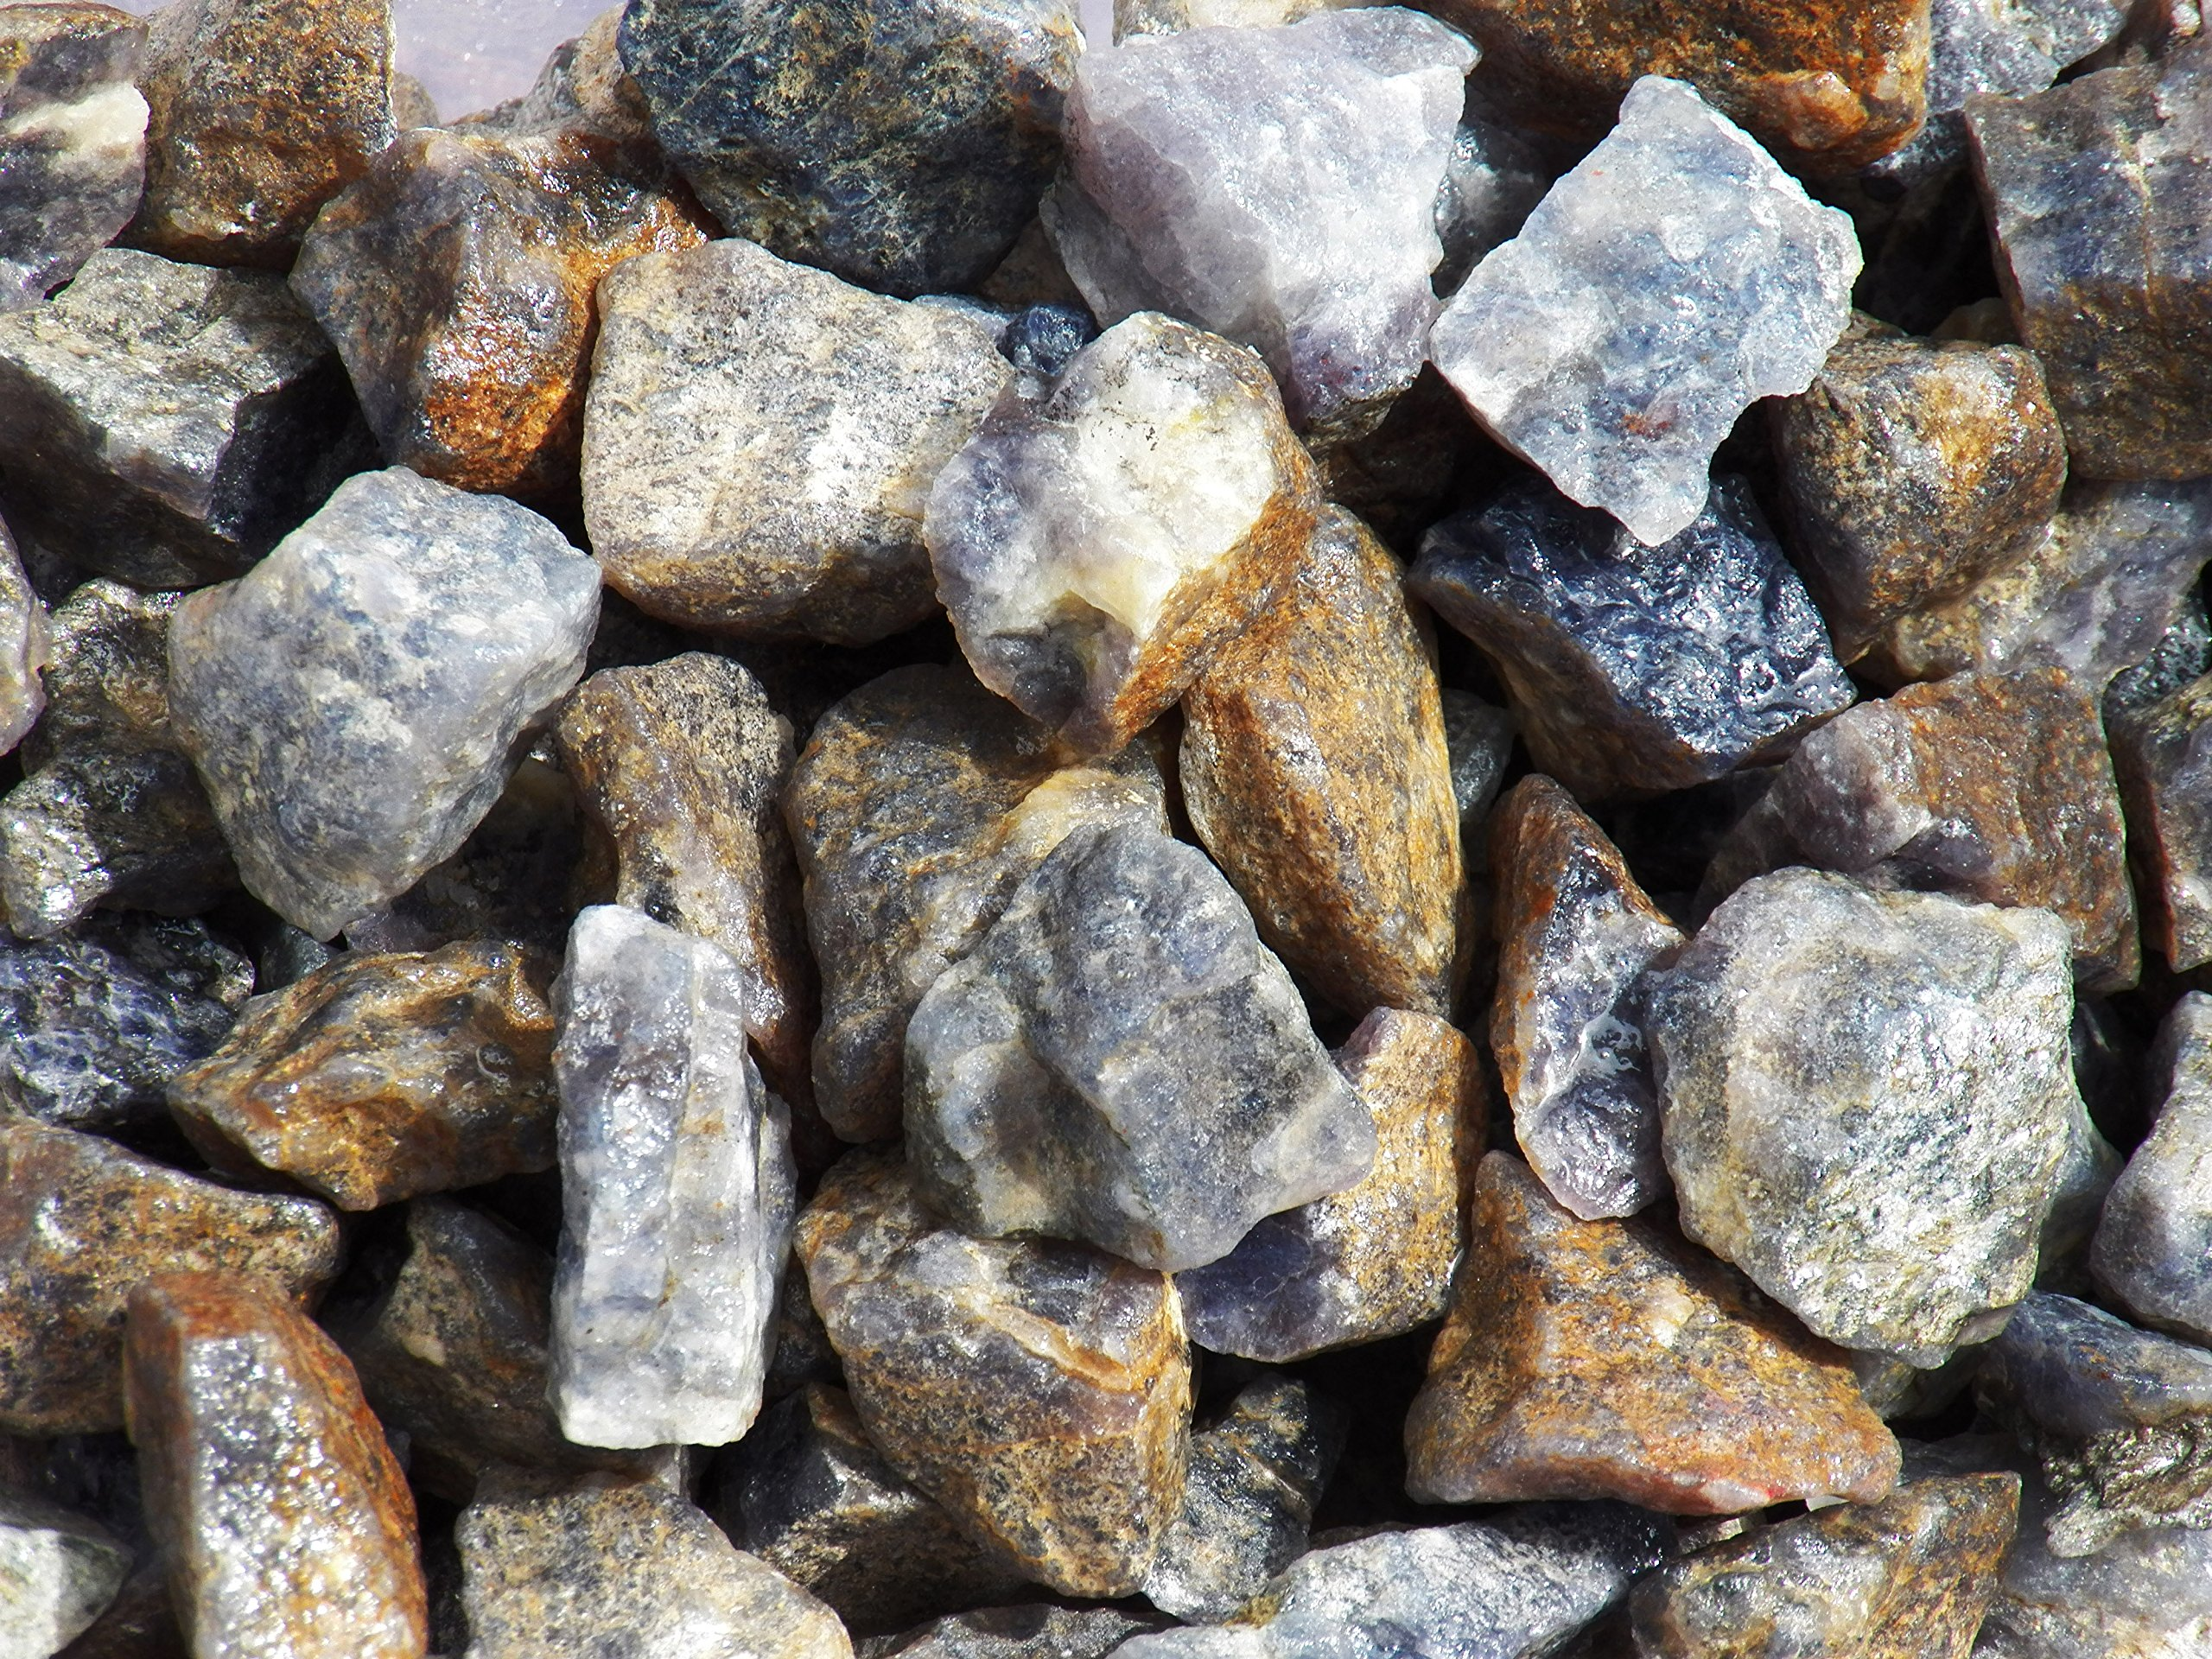 Fundamental Rockhound Products: Rough IOLITE Natural Rock for Tumbling, Metaphysical Use, Gemstones Healing Crystals * Wholesale Lot * ... from India (11 lb)